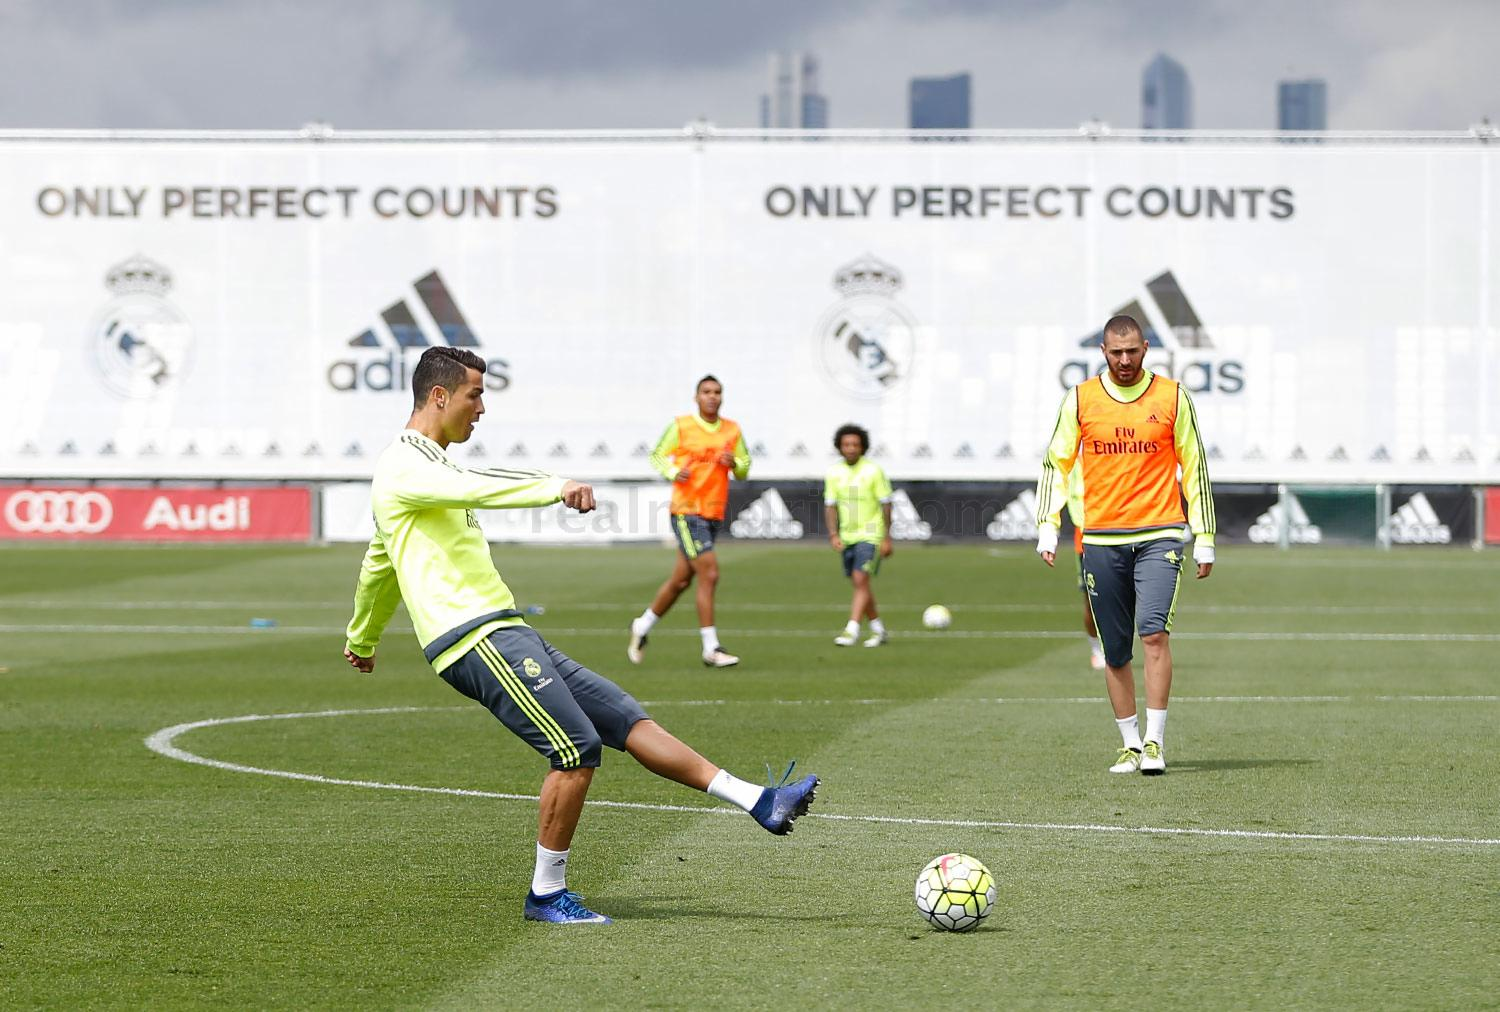 Real Madrid - Entrenamiento del Real Madrid - 11-05-2016